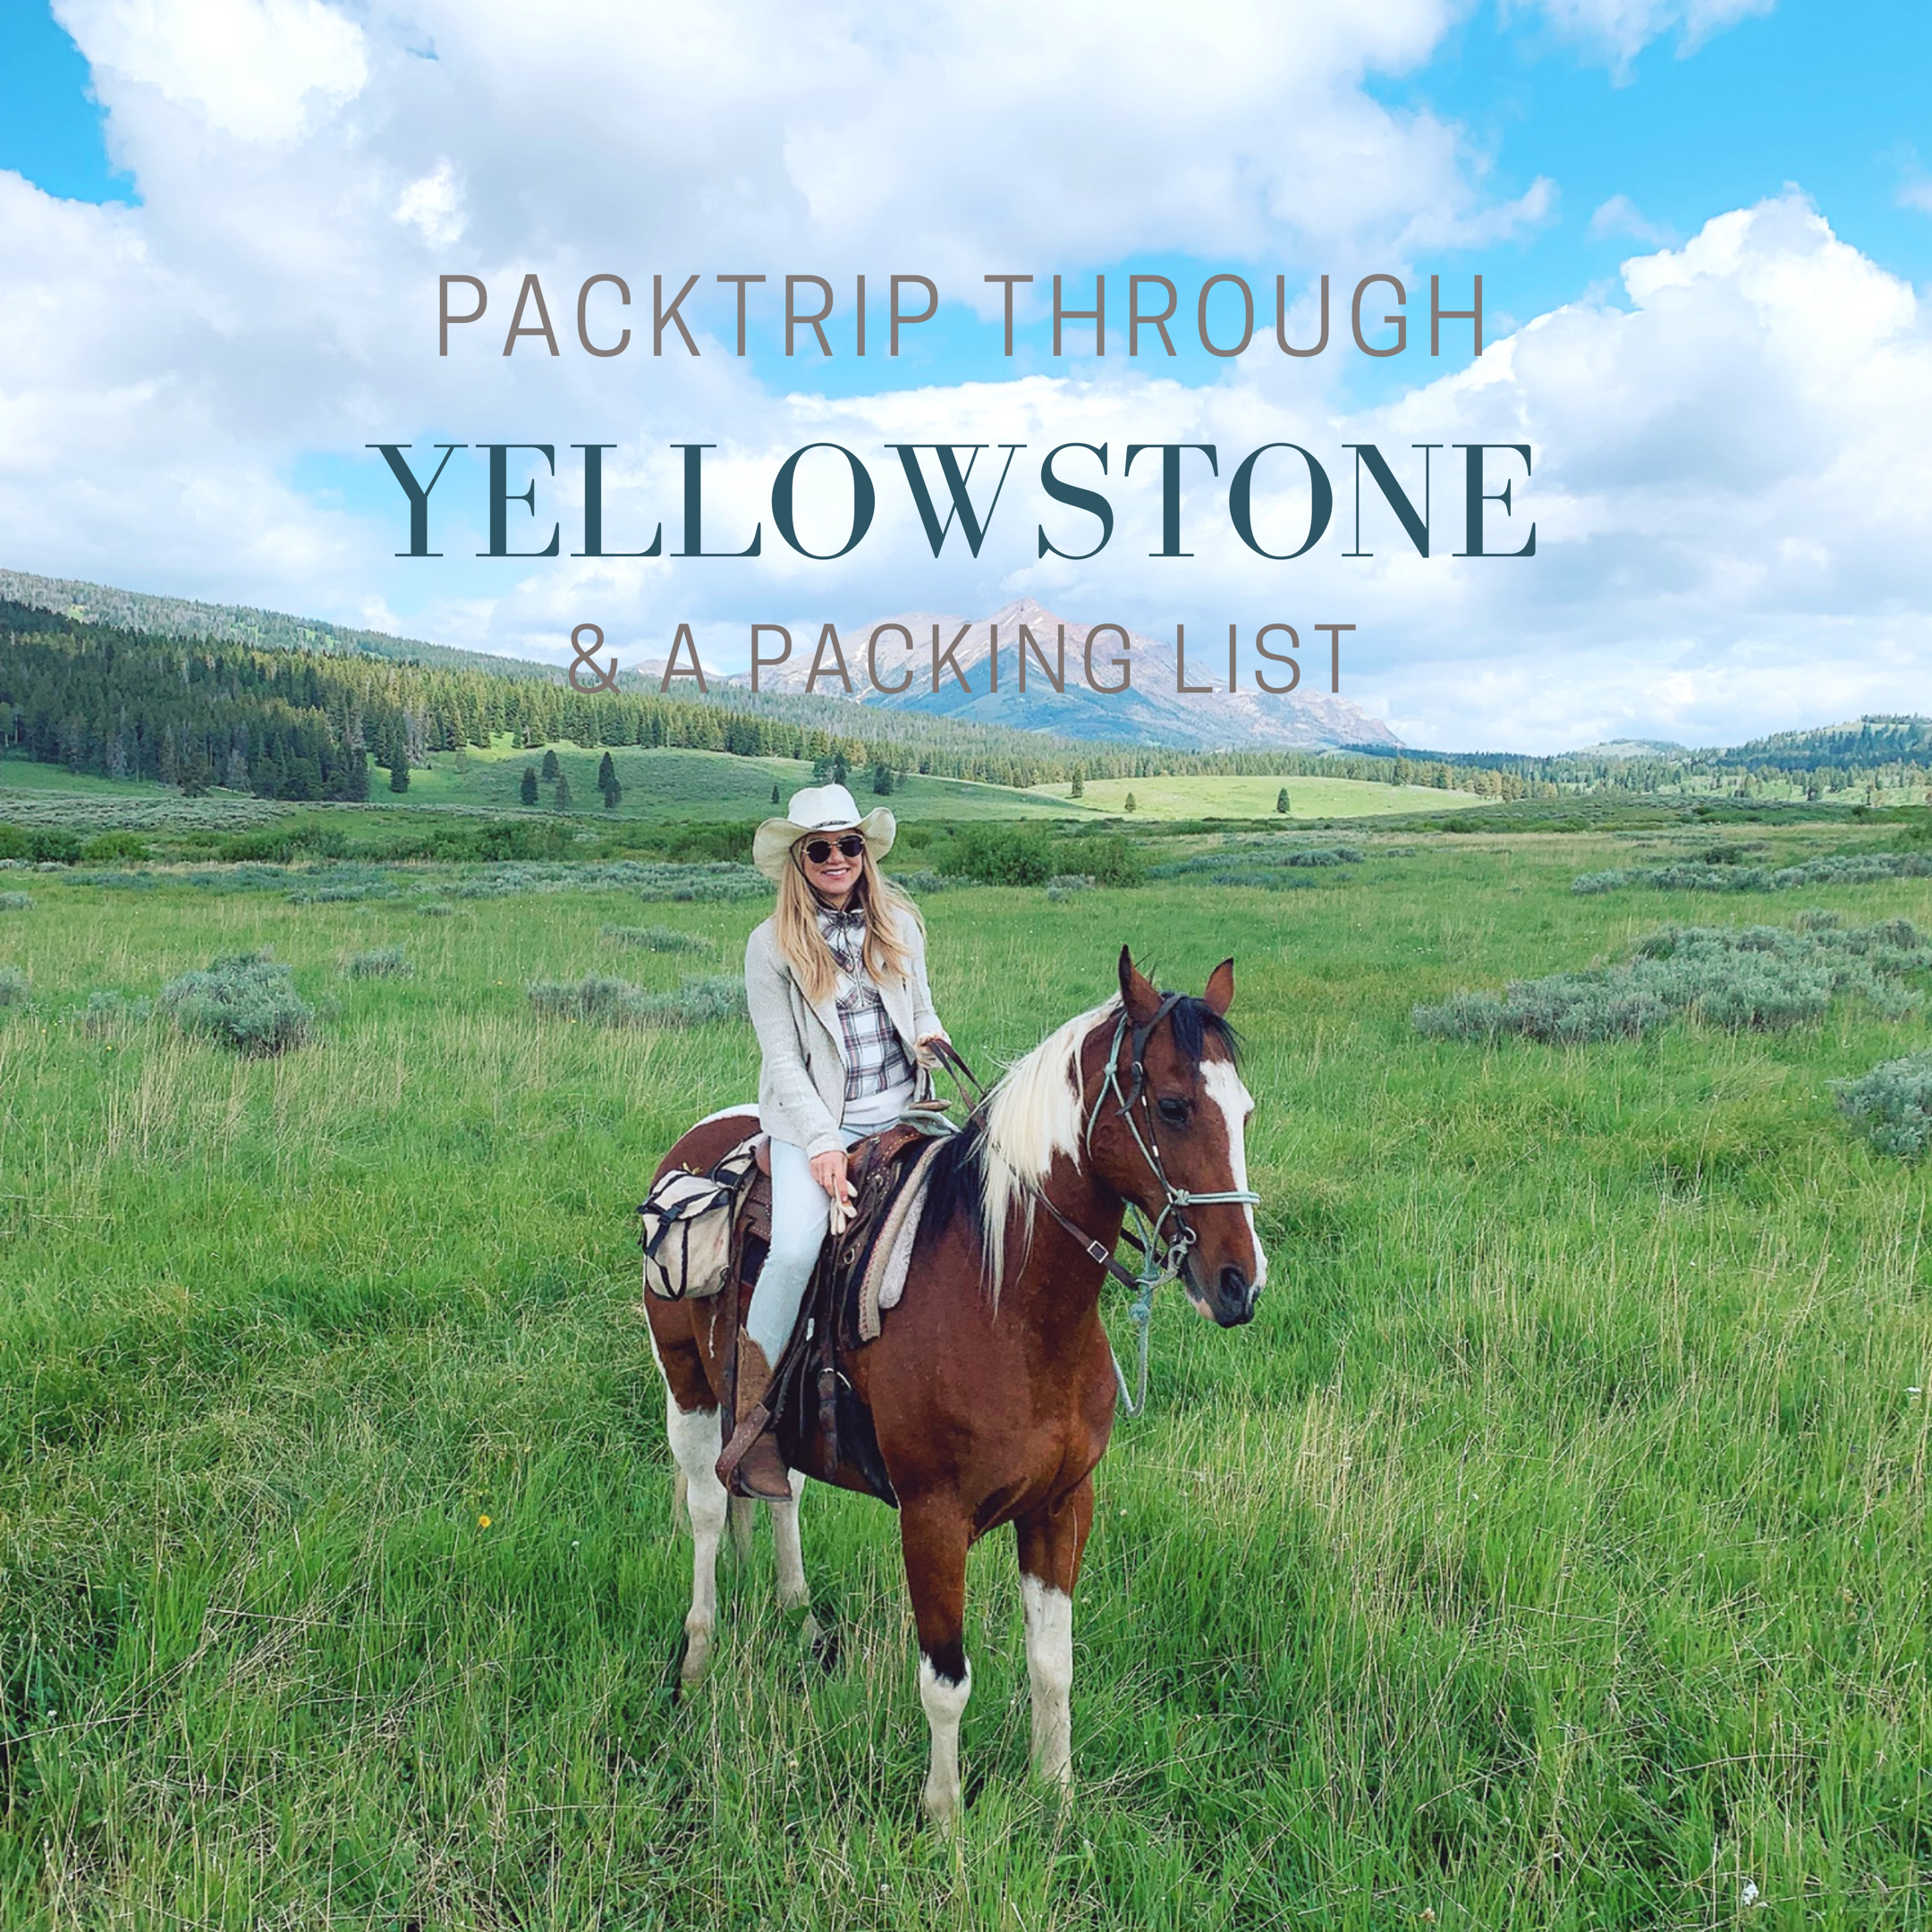 Horseback & Camp through Yellowstone's Back Country